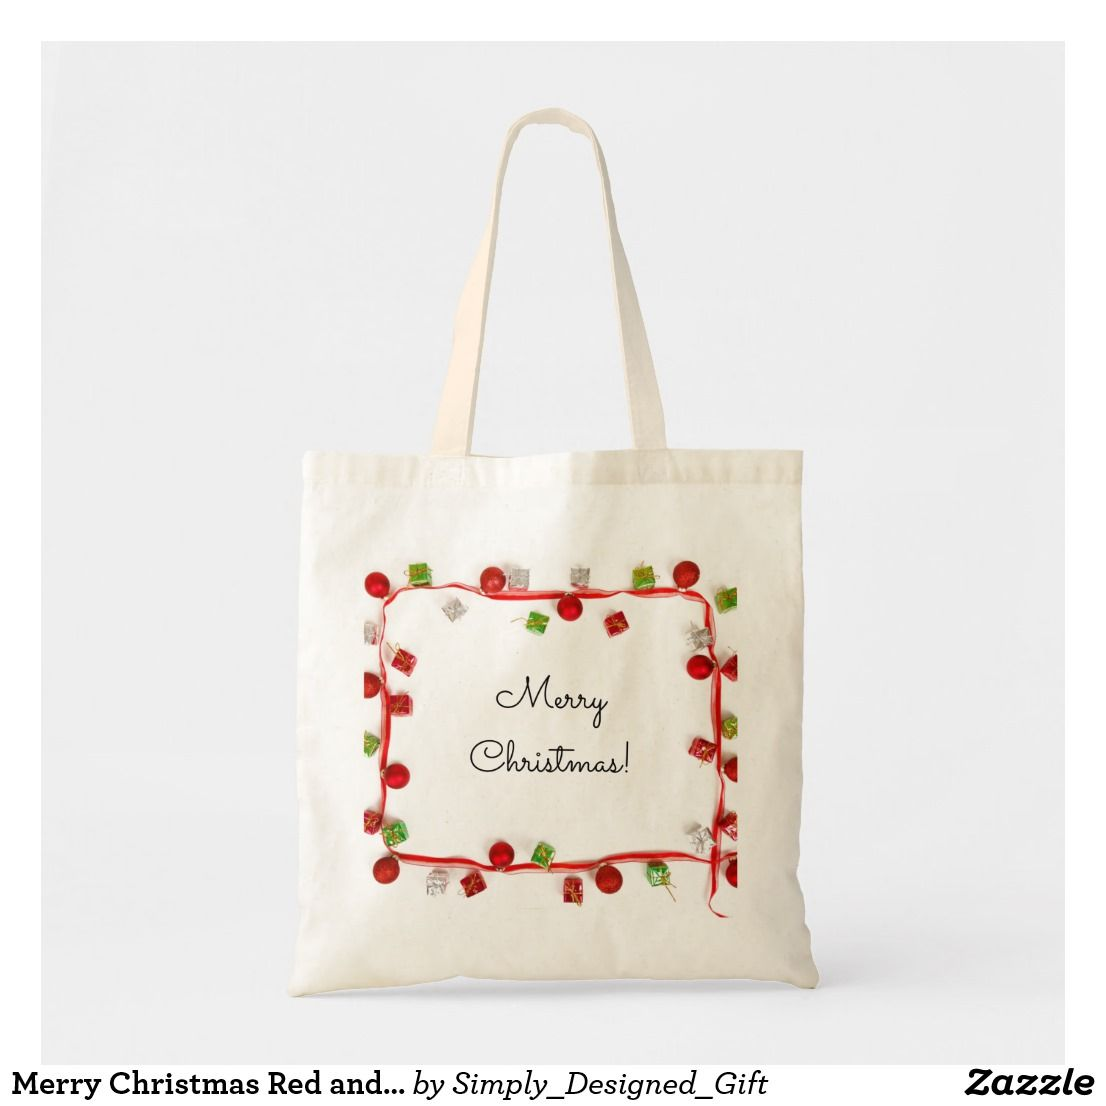 Custom Gift Bag Canvas Tote Merry and Bright Tote Bag Canvas Tote Bag Christmas Christmas Shopping Shopping Bag